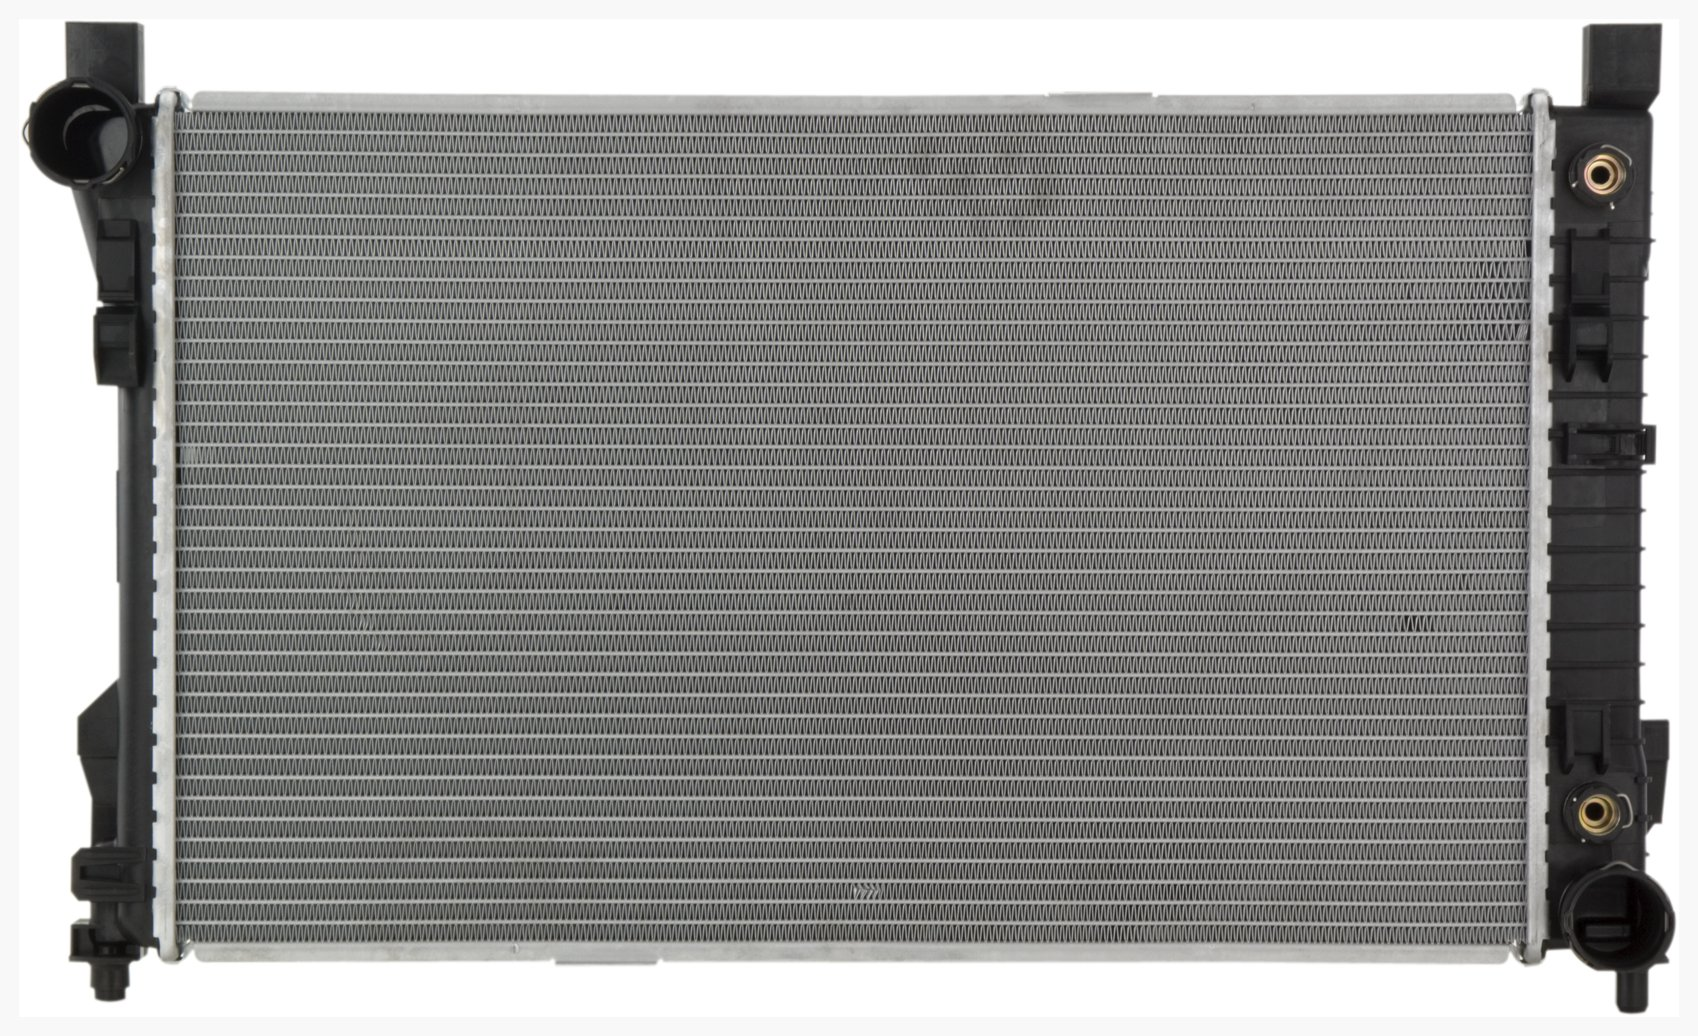 CSF Radiator New for Mercedes C Class 203 500 0503 Sedan Mercedes-Benz 2990